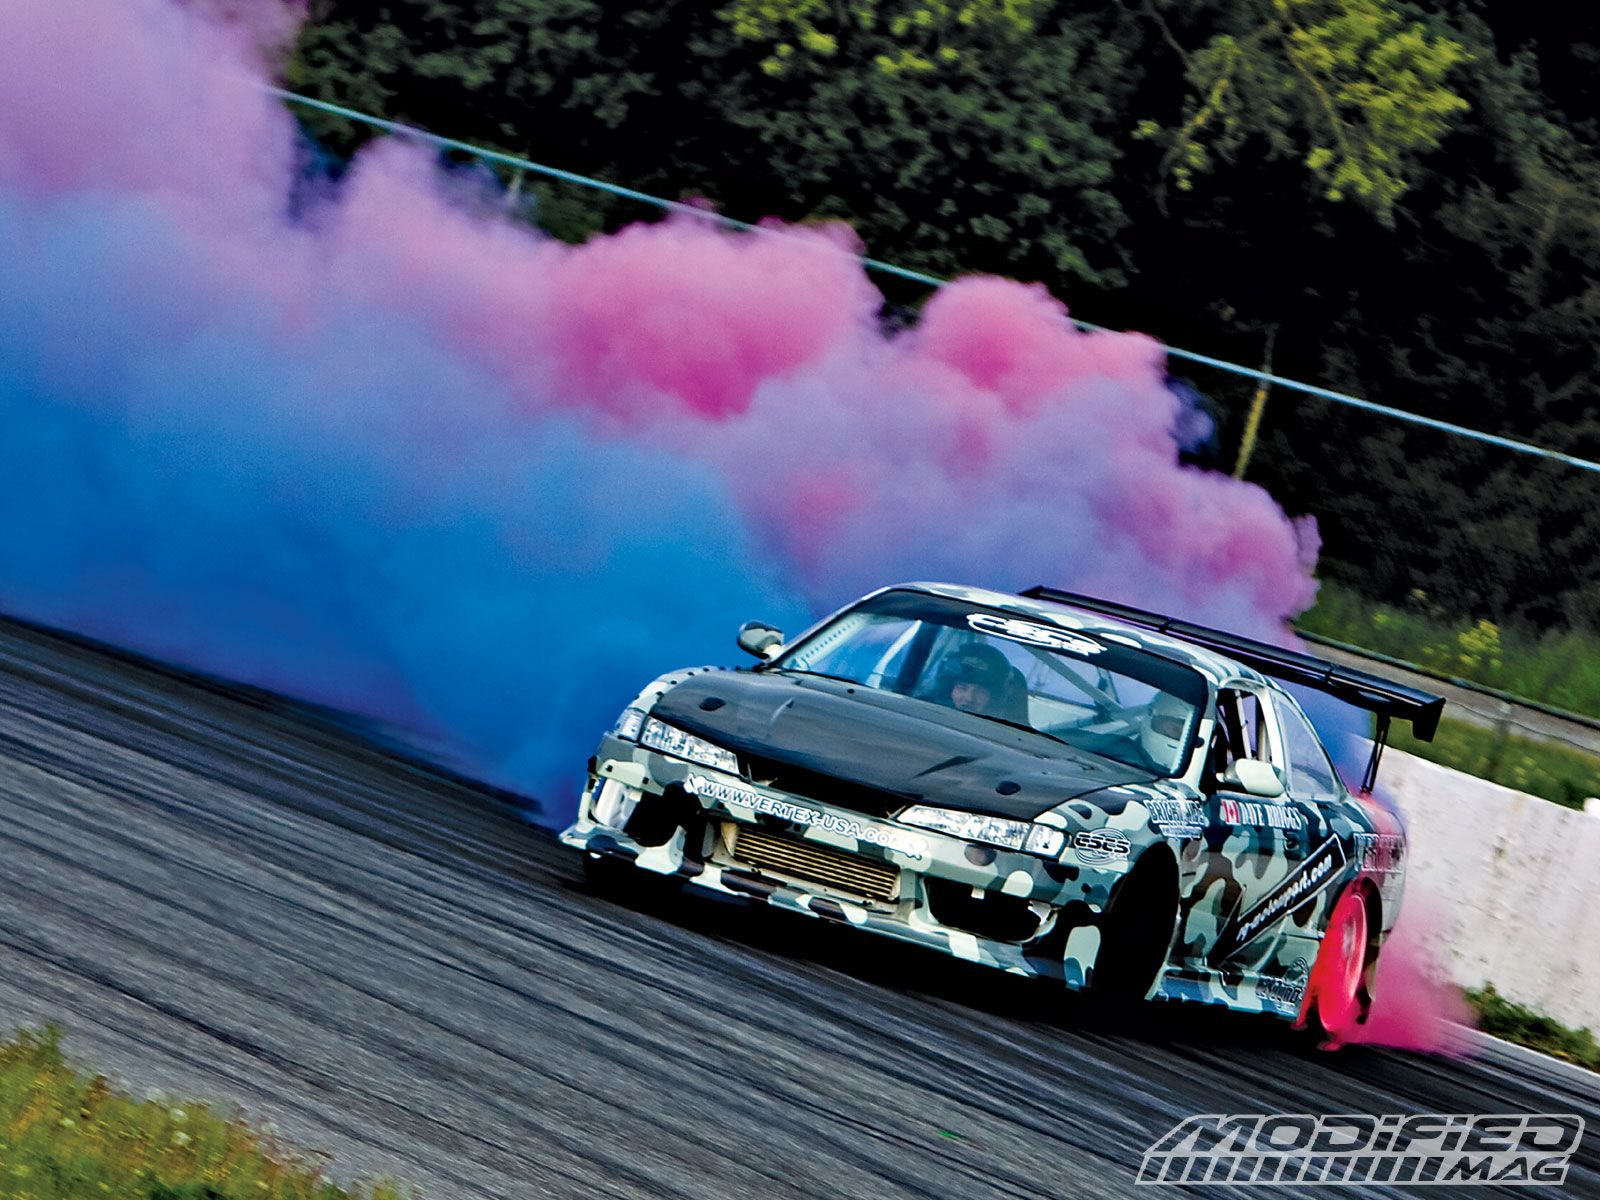 Drifting Car HD Wallpaper | drift cars | Pinterest ...